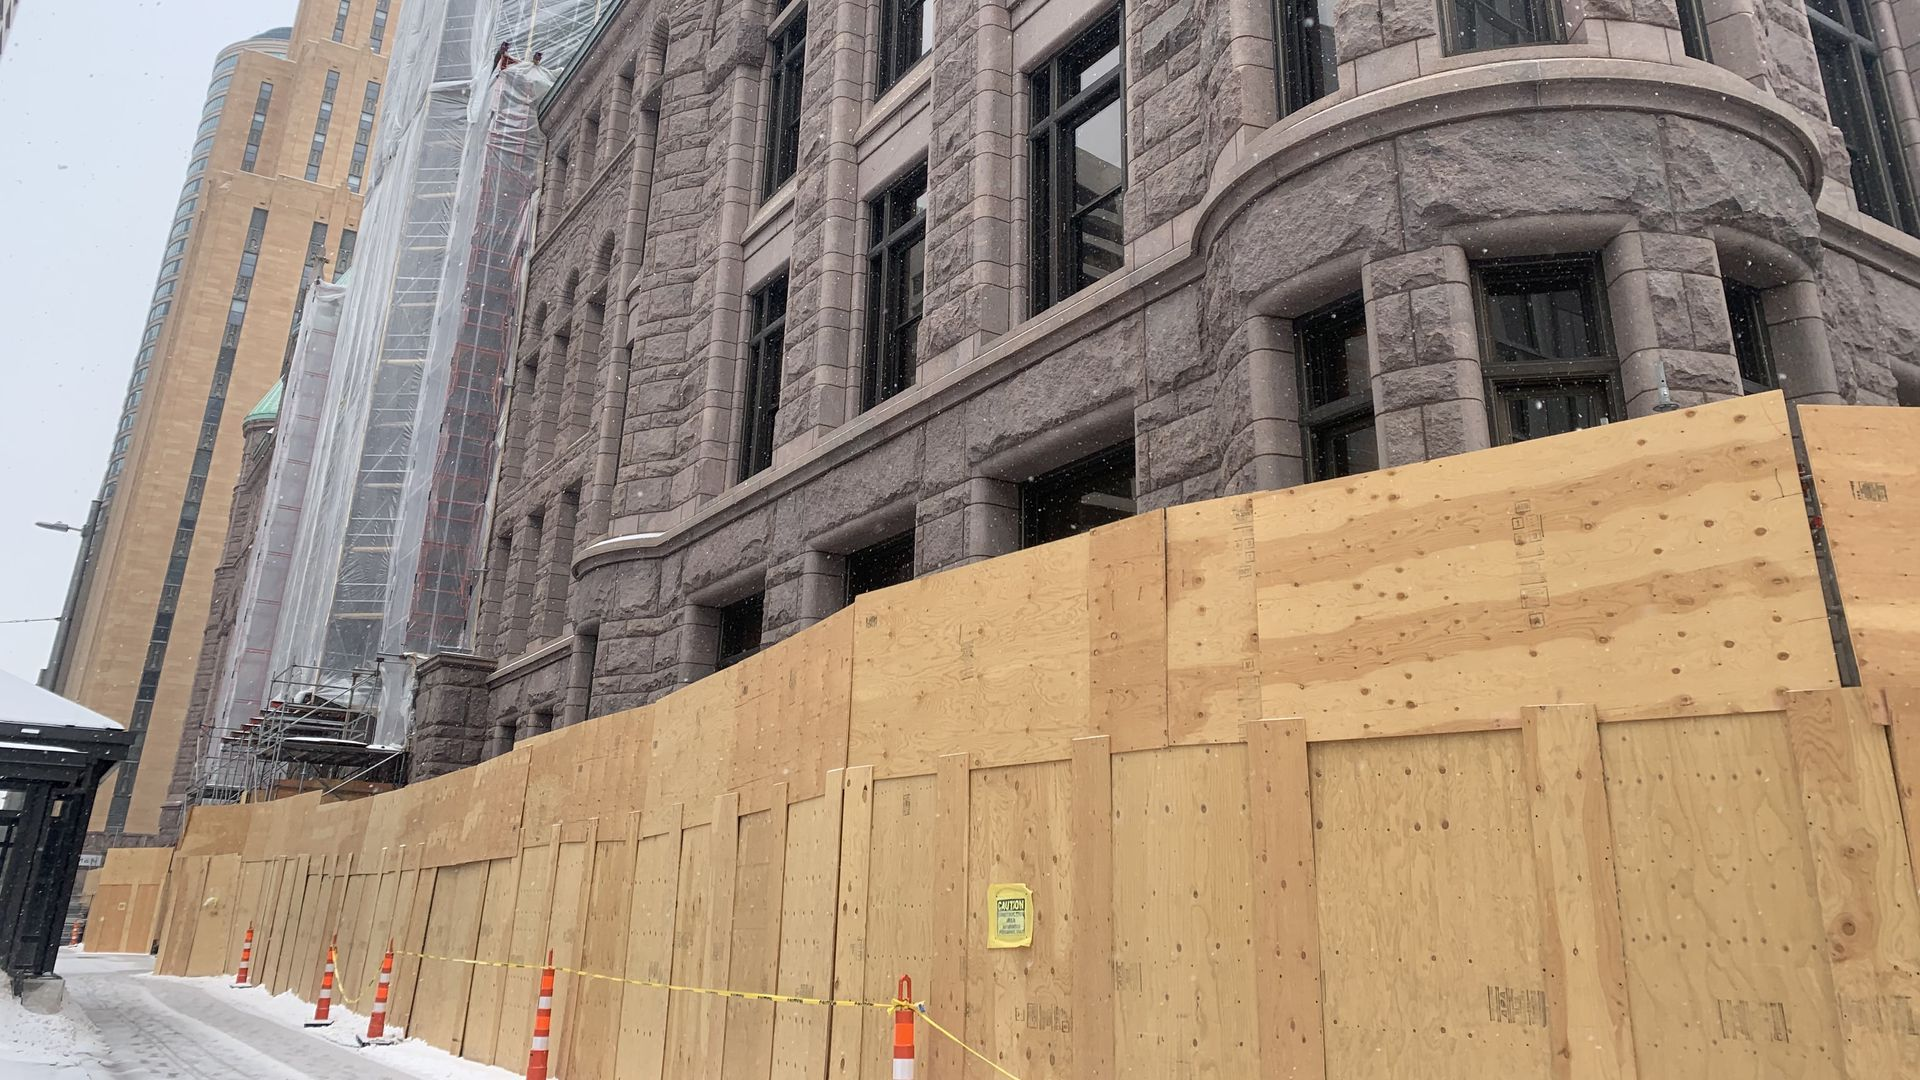 Picture of Minneapolis City Hall surrounded by barricades